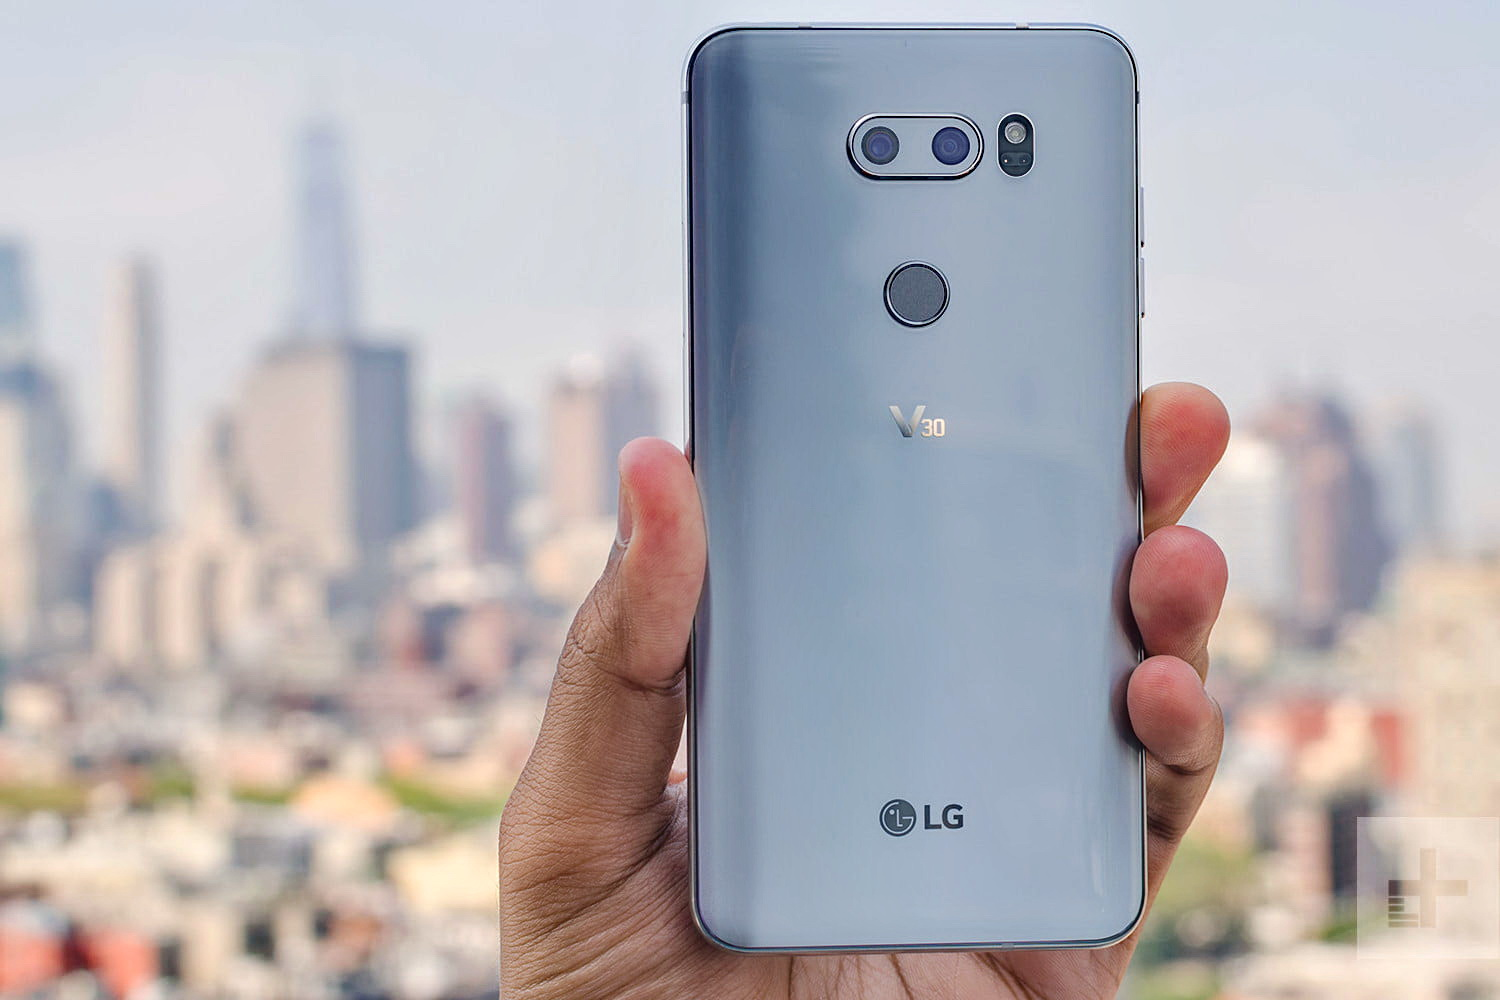 LG smartphones are vulnerable for 7 years